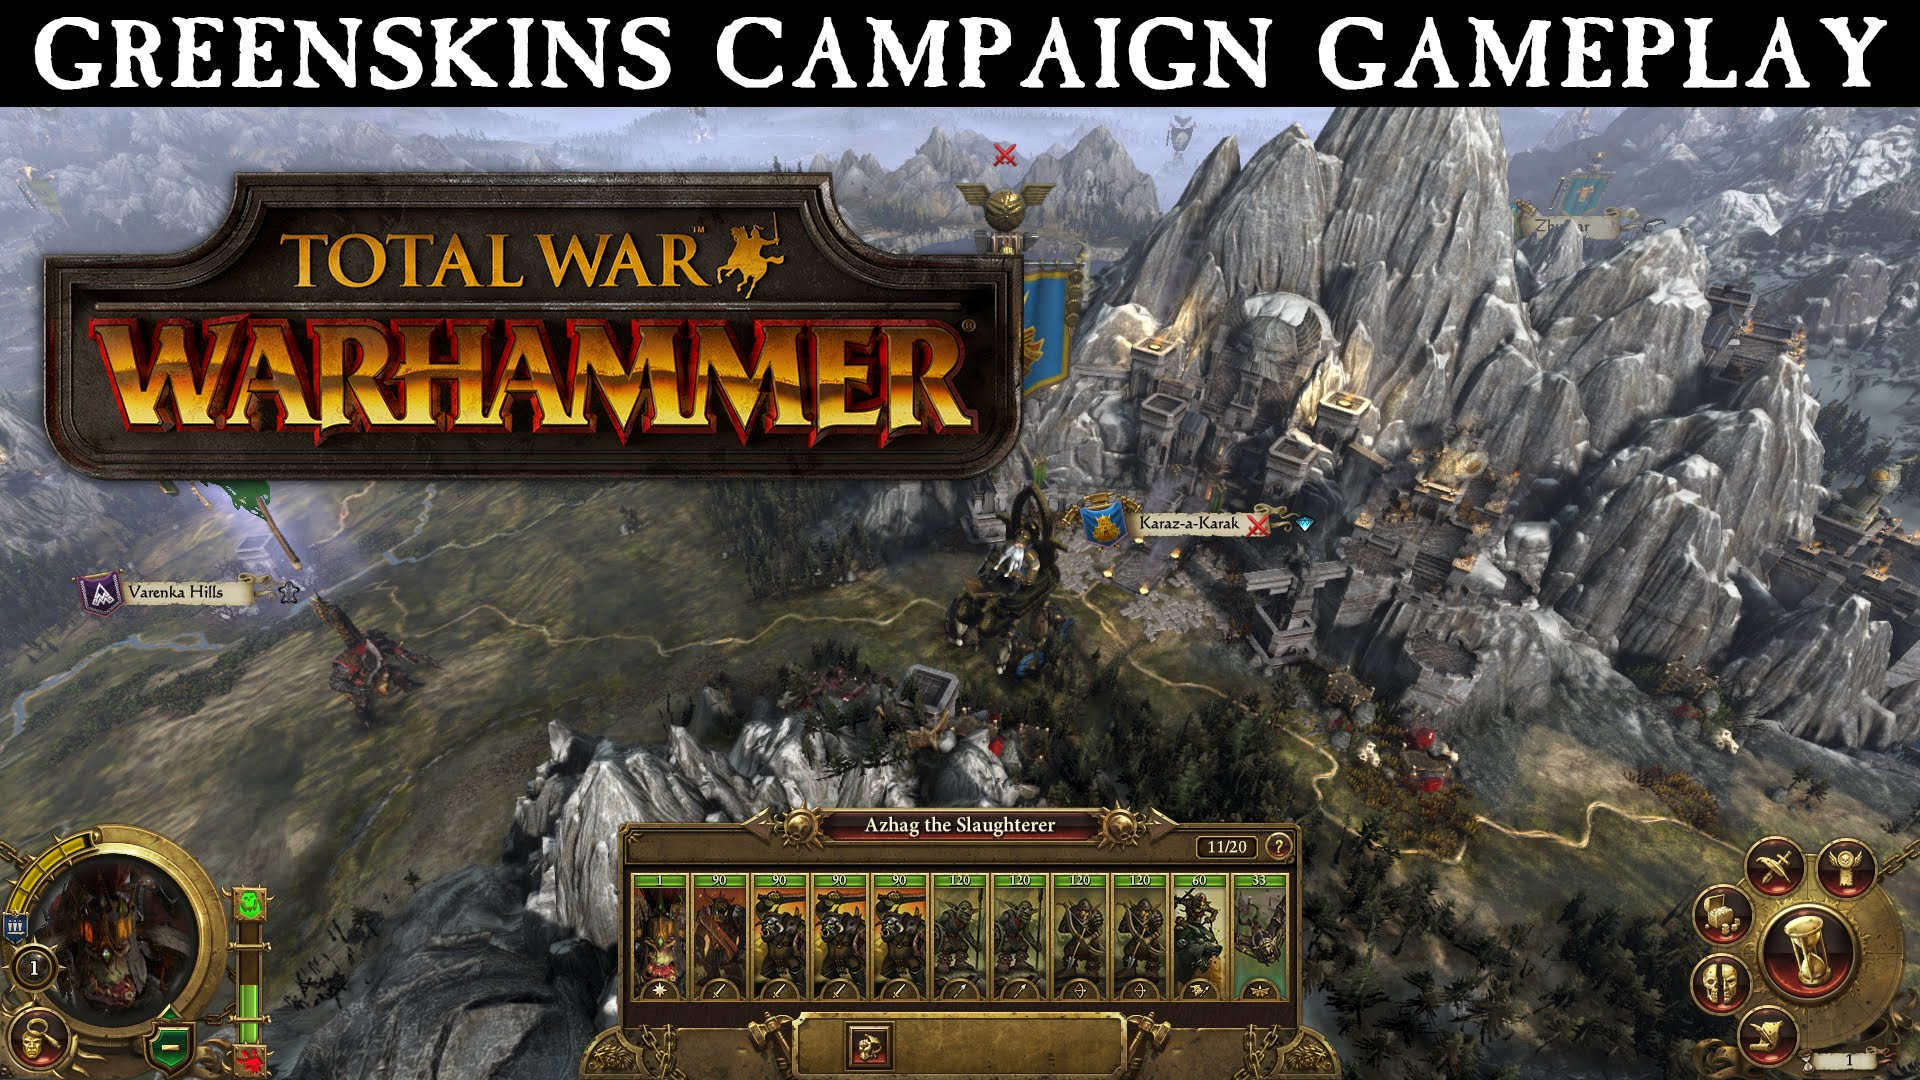 Total War Warhammer Greenskins Campaign TrailerVideo Game News 1920x1080